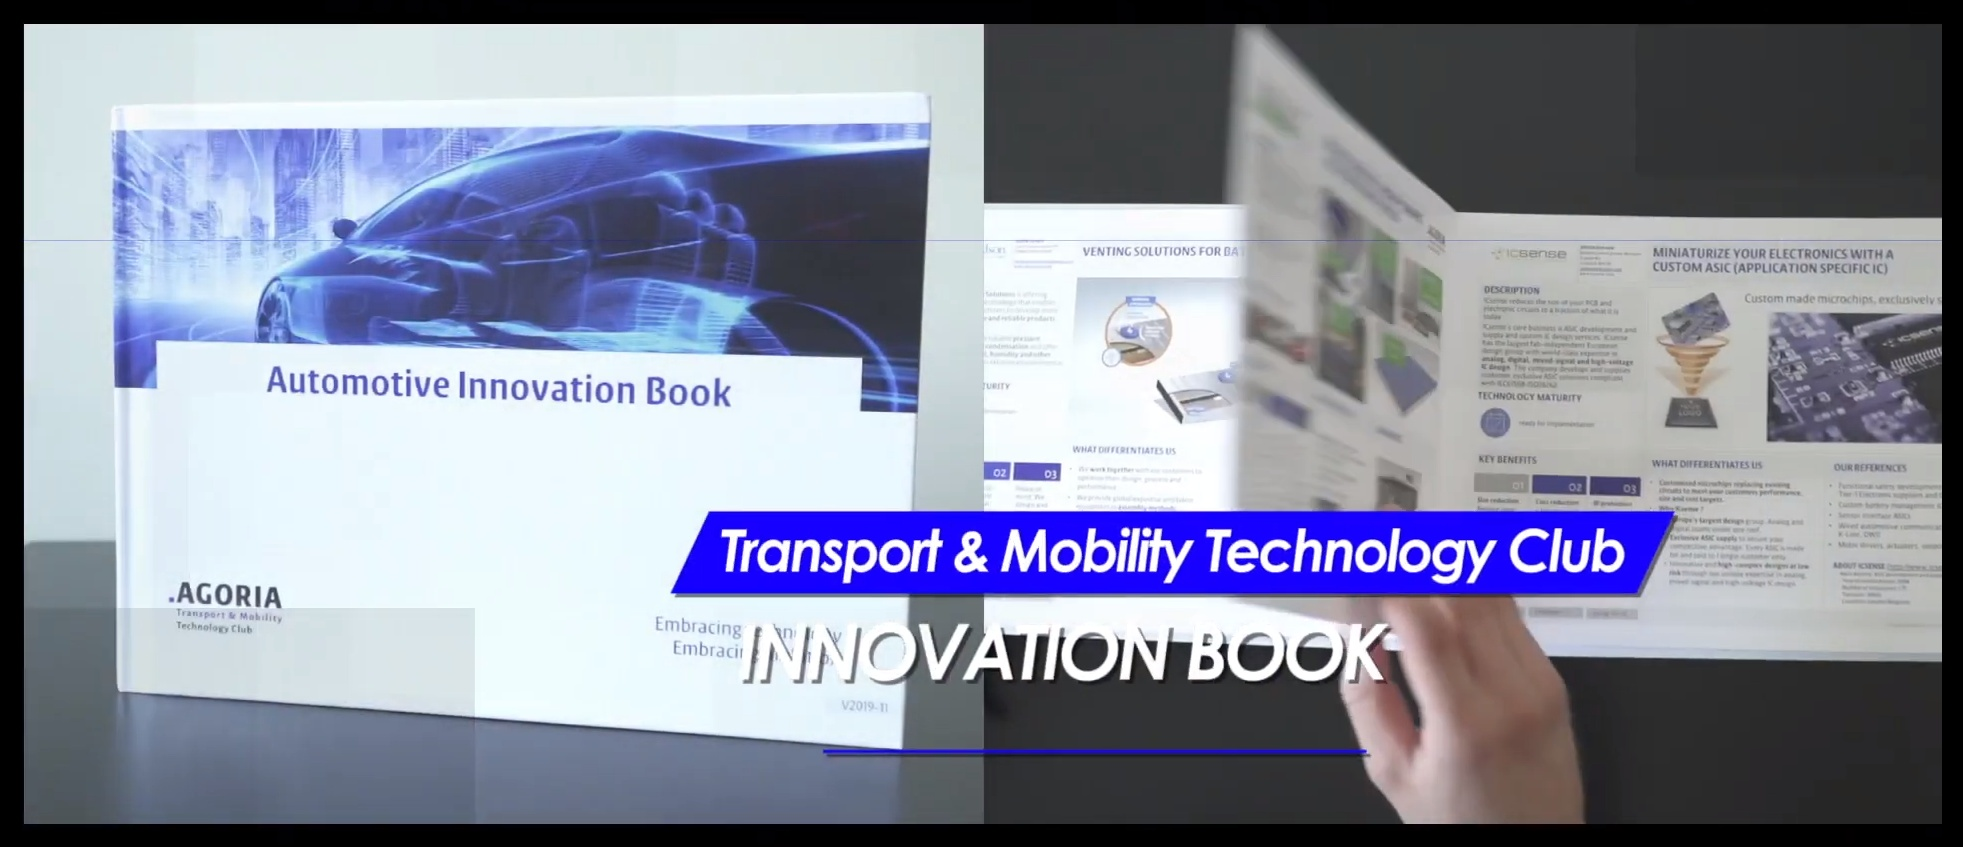 Innovation Book on Vehicle Electrification (electric drivetrains, battery pack technologies, thermal management etc)